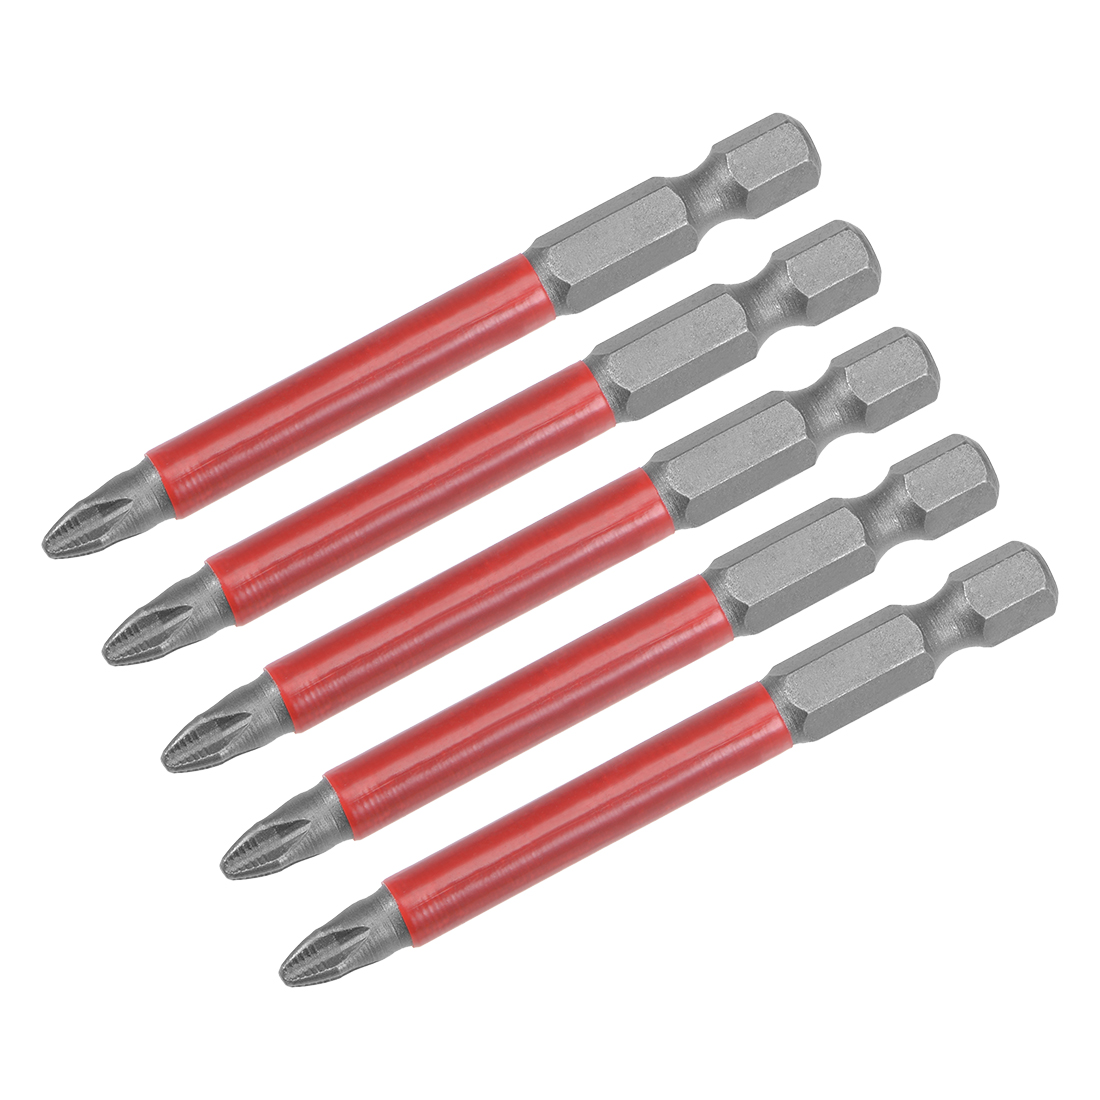 Phillips Bits 5pcs 1/4-Inch Hex Shank Magnetic PH2 Screwdriver Bit